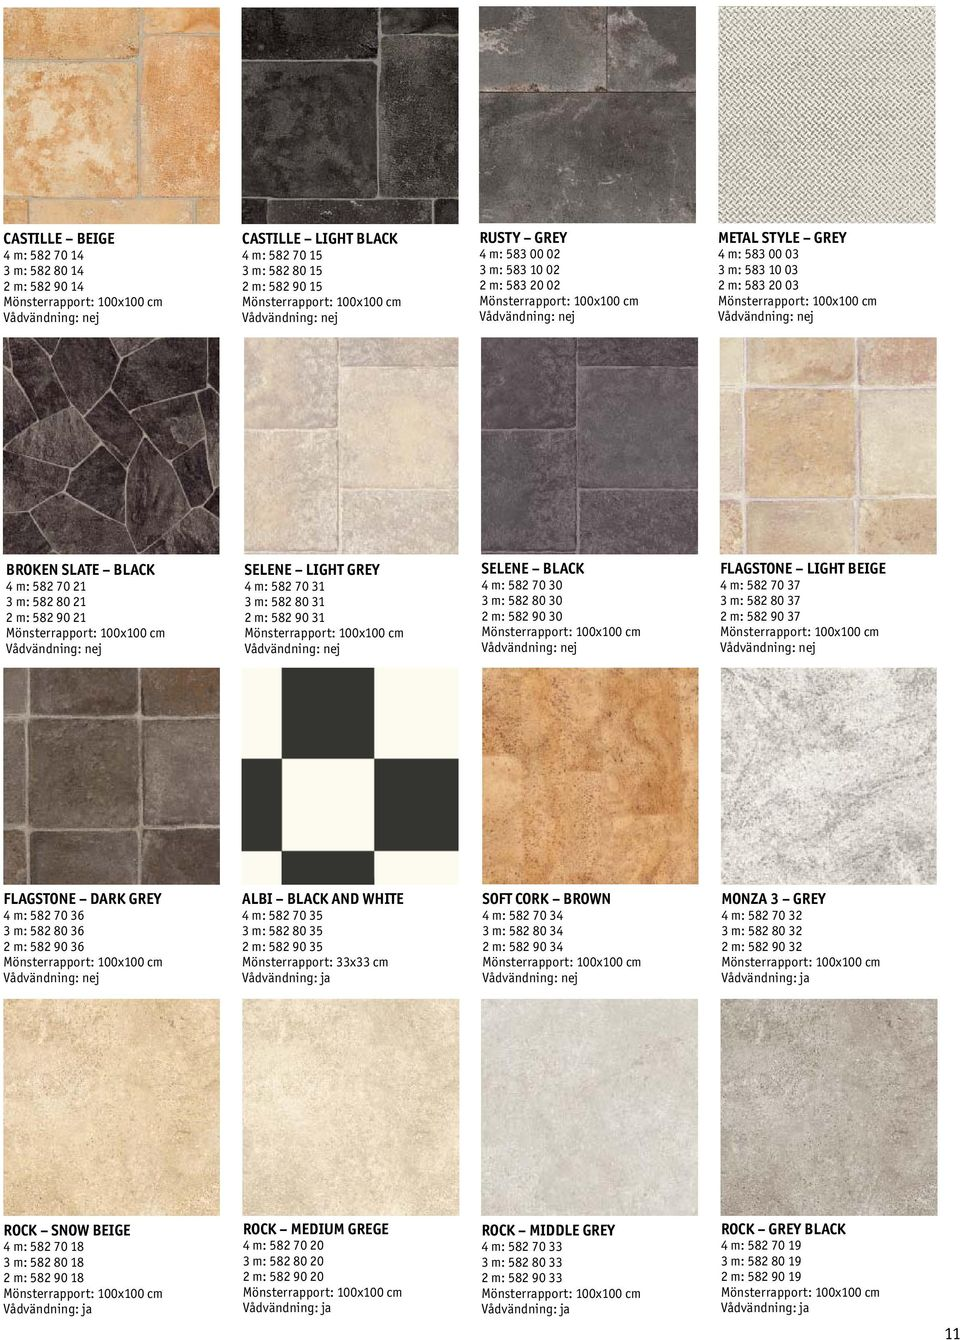 3 m: 582 80 30 2 m: 582 90 30 FLAGSTONE LIGHT BEIGE 4 m: 582 70 37 3 m: 582 80 37 2 m: 582 90 37 FLAGSTONE DARK GREY 4 m: 582 70 36 3 m: 582 80 36 2 m: 582 90 36 ALBI BLACK AND WHITE 4 m: 582 70 35 3